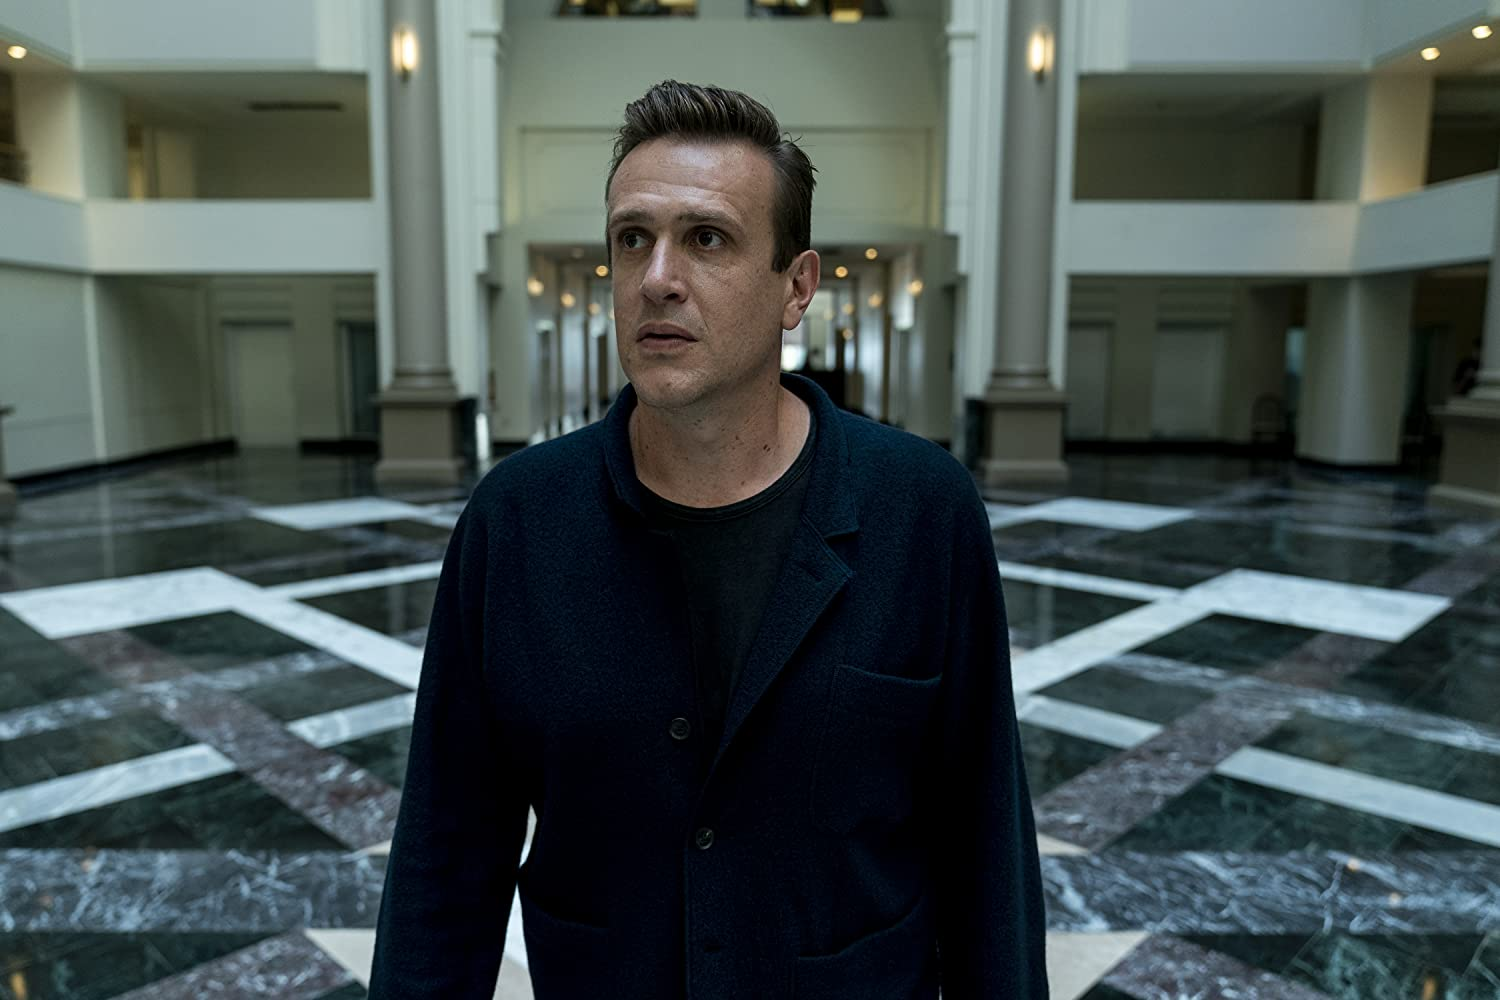 Jason Segel in Dispatches from Elsewhere (2020)